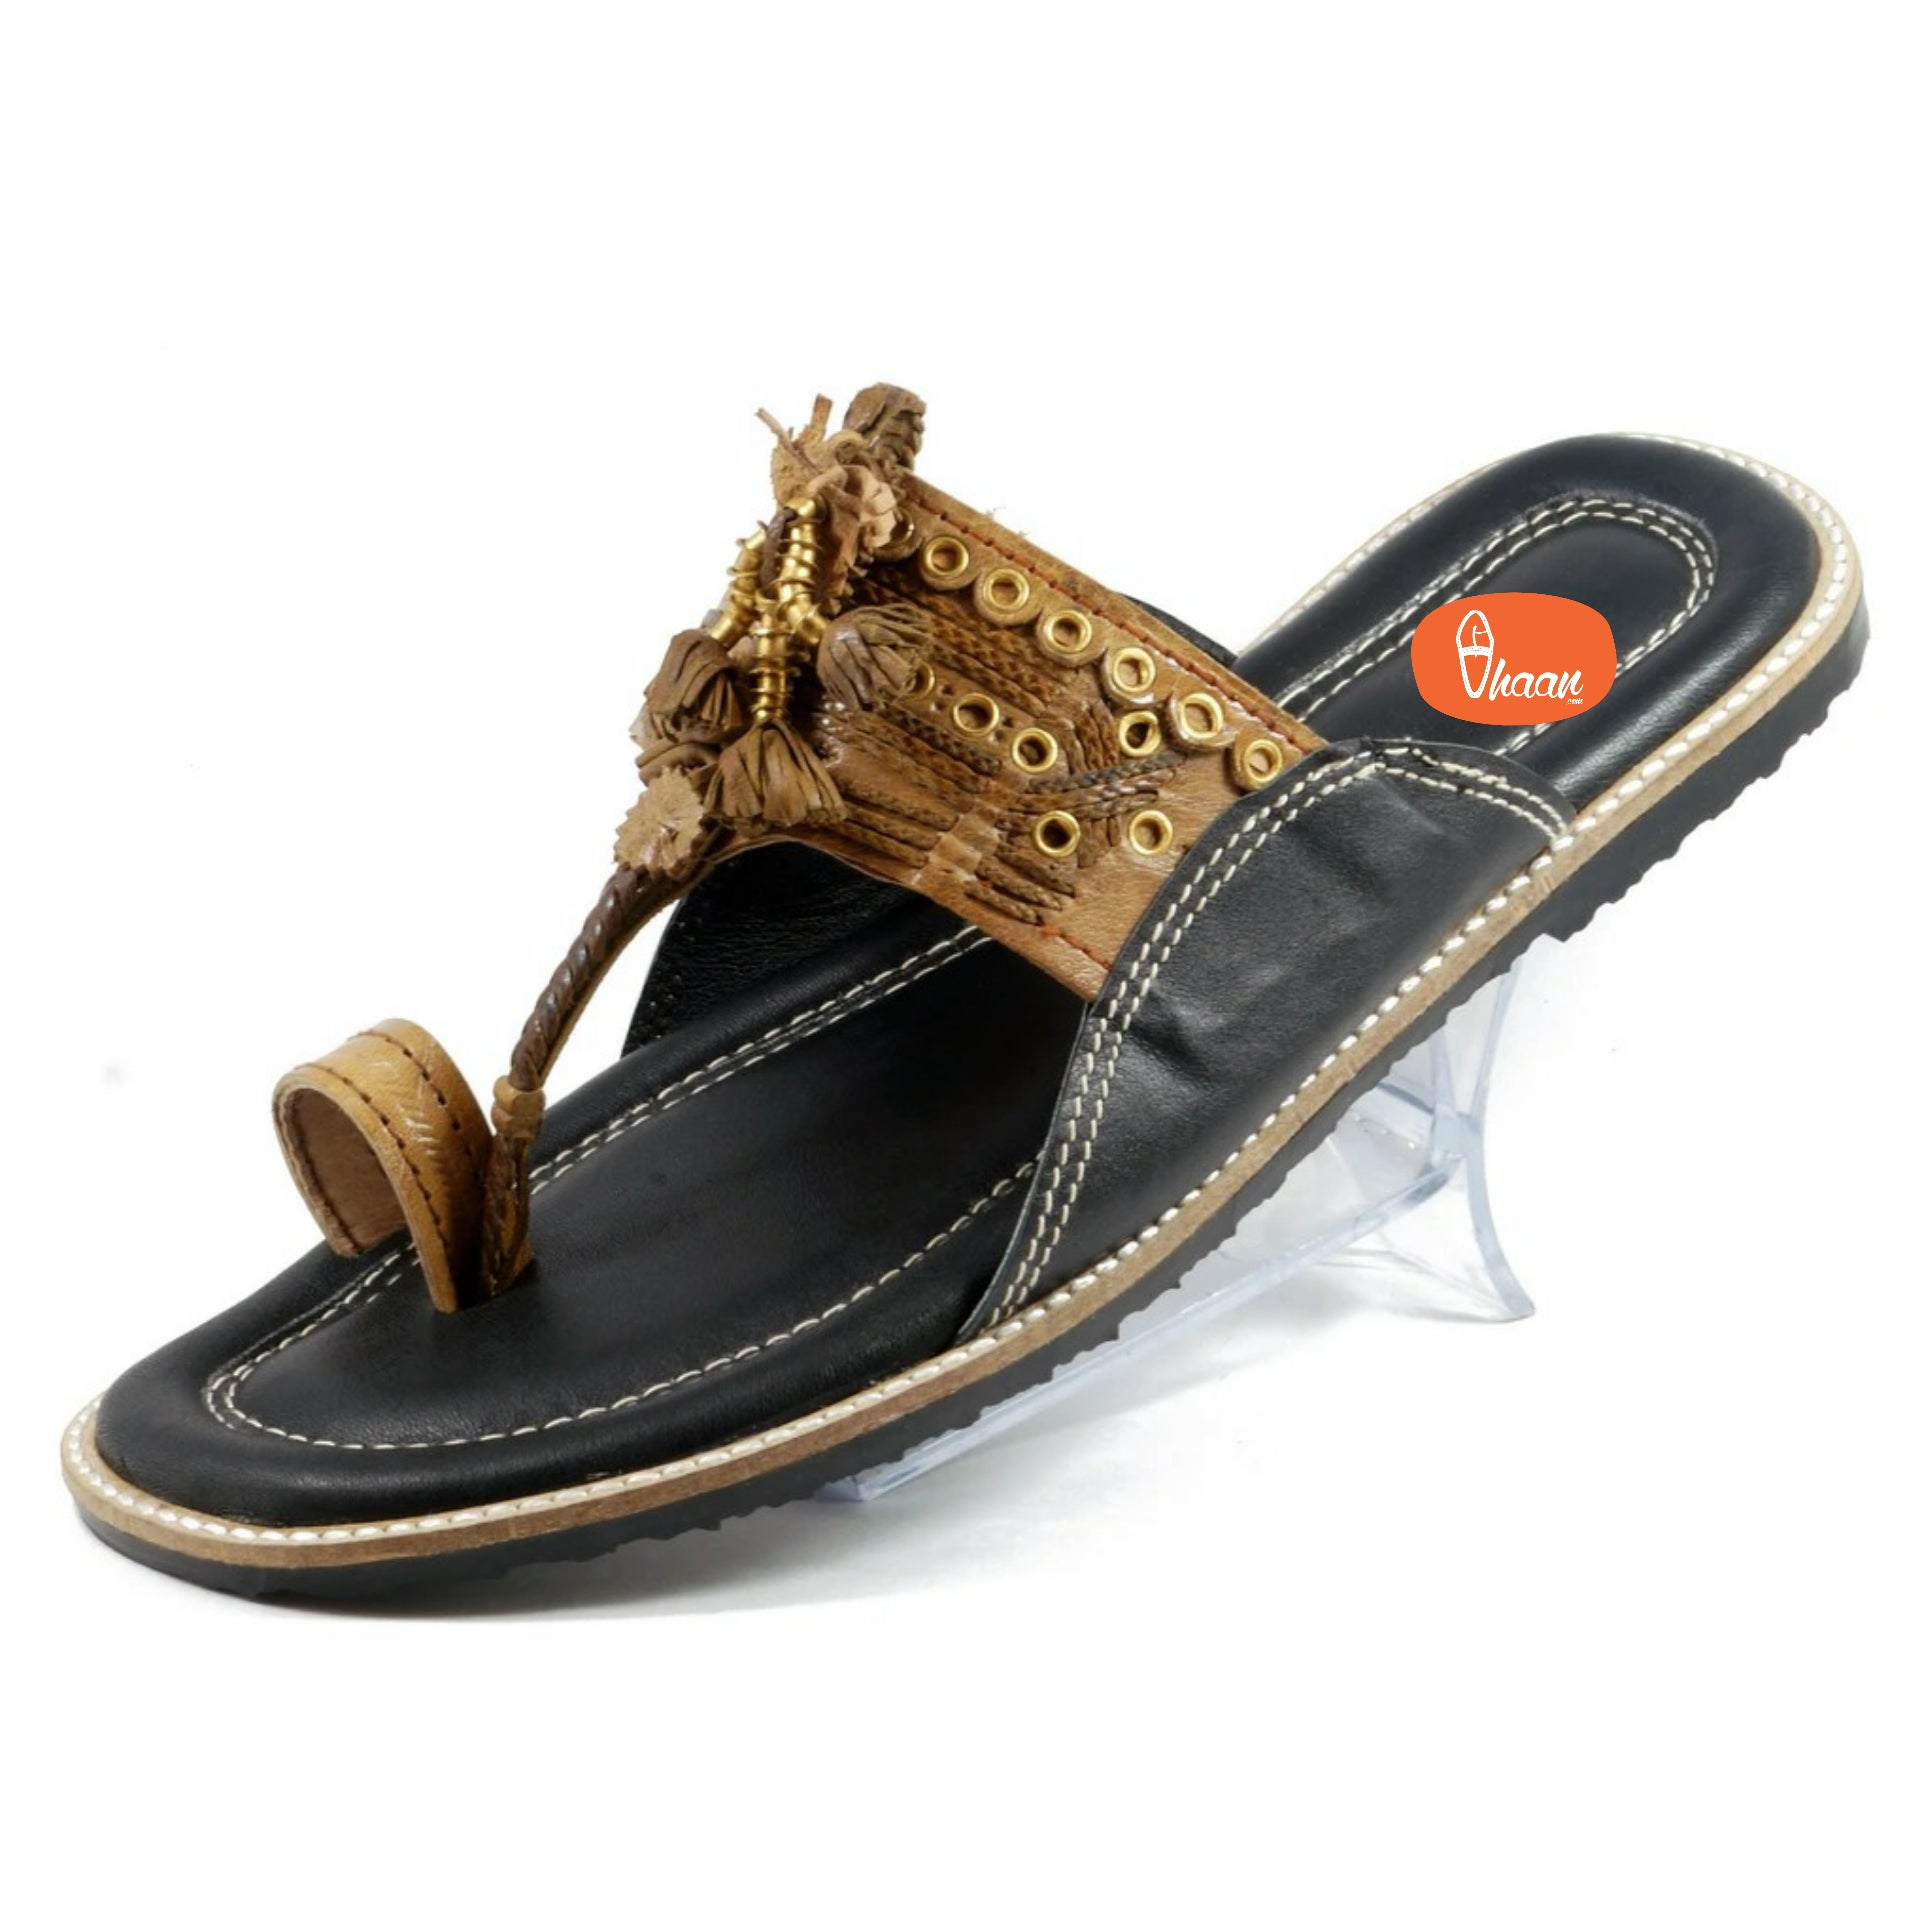 Pure leather  Cushioned Anti Slippery Assal kolhapuri chappal for men